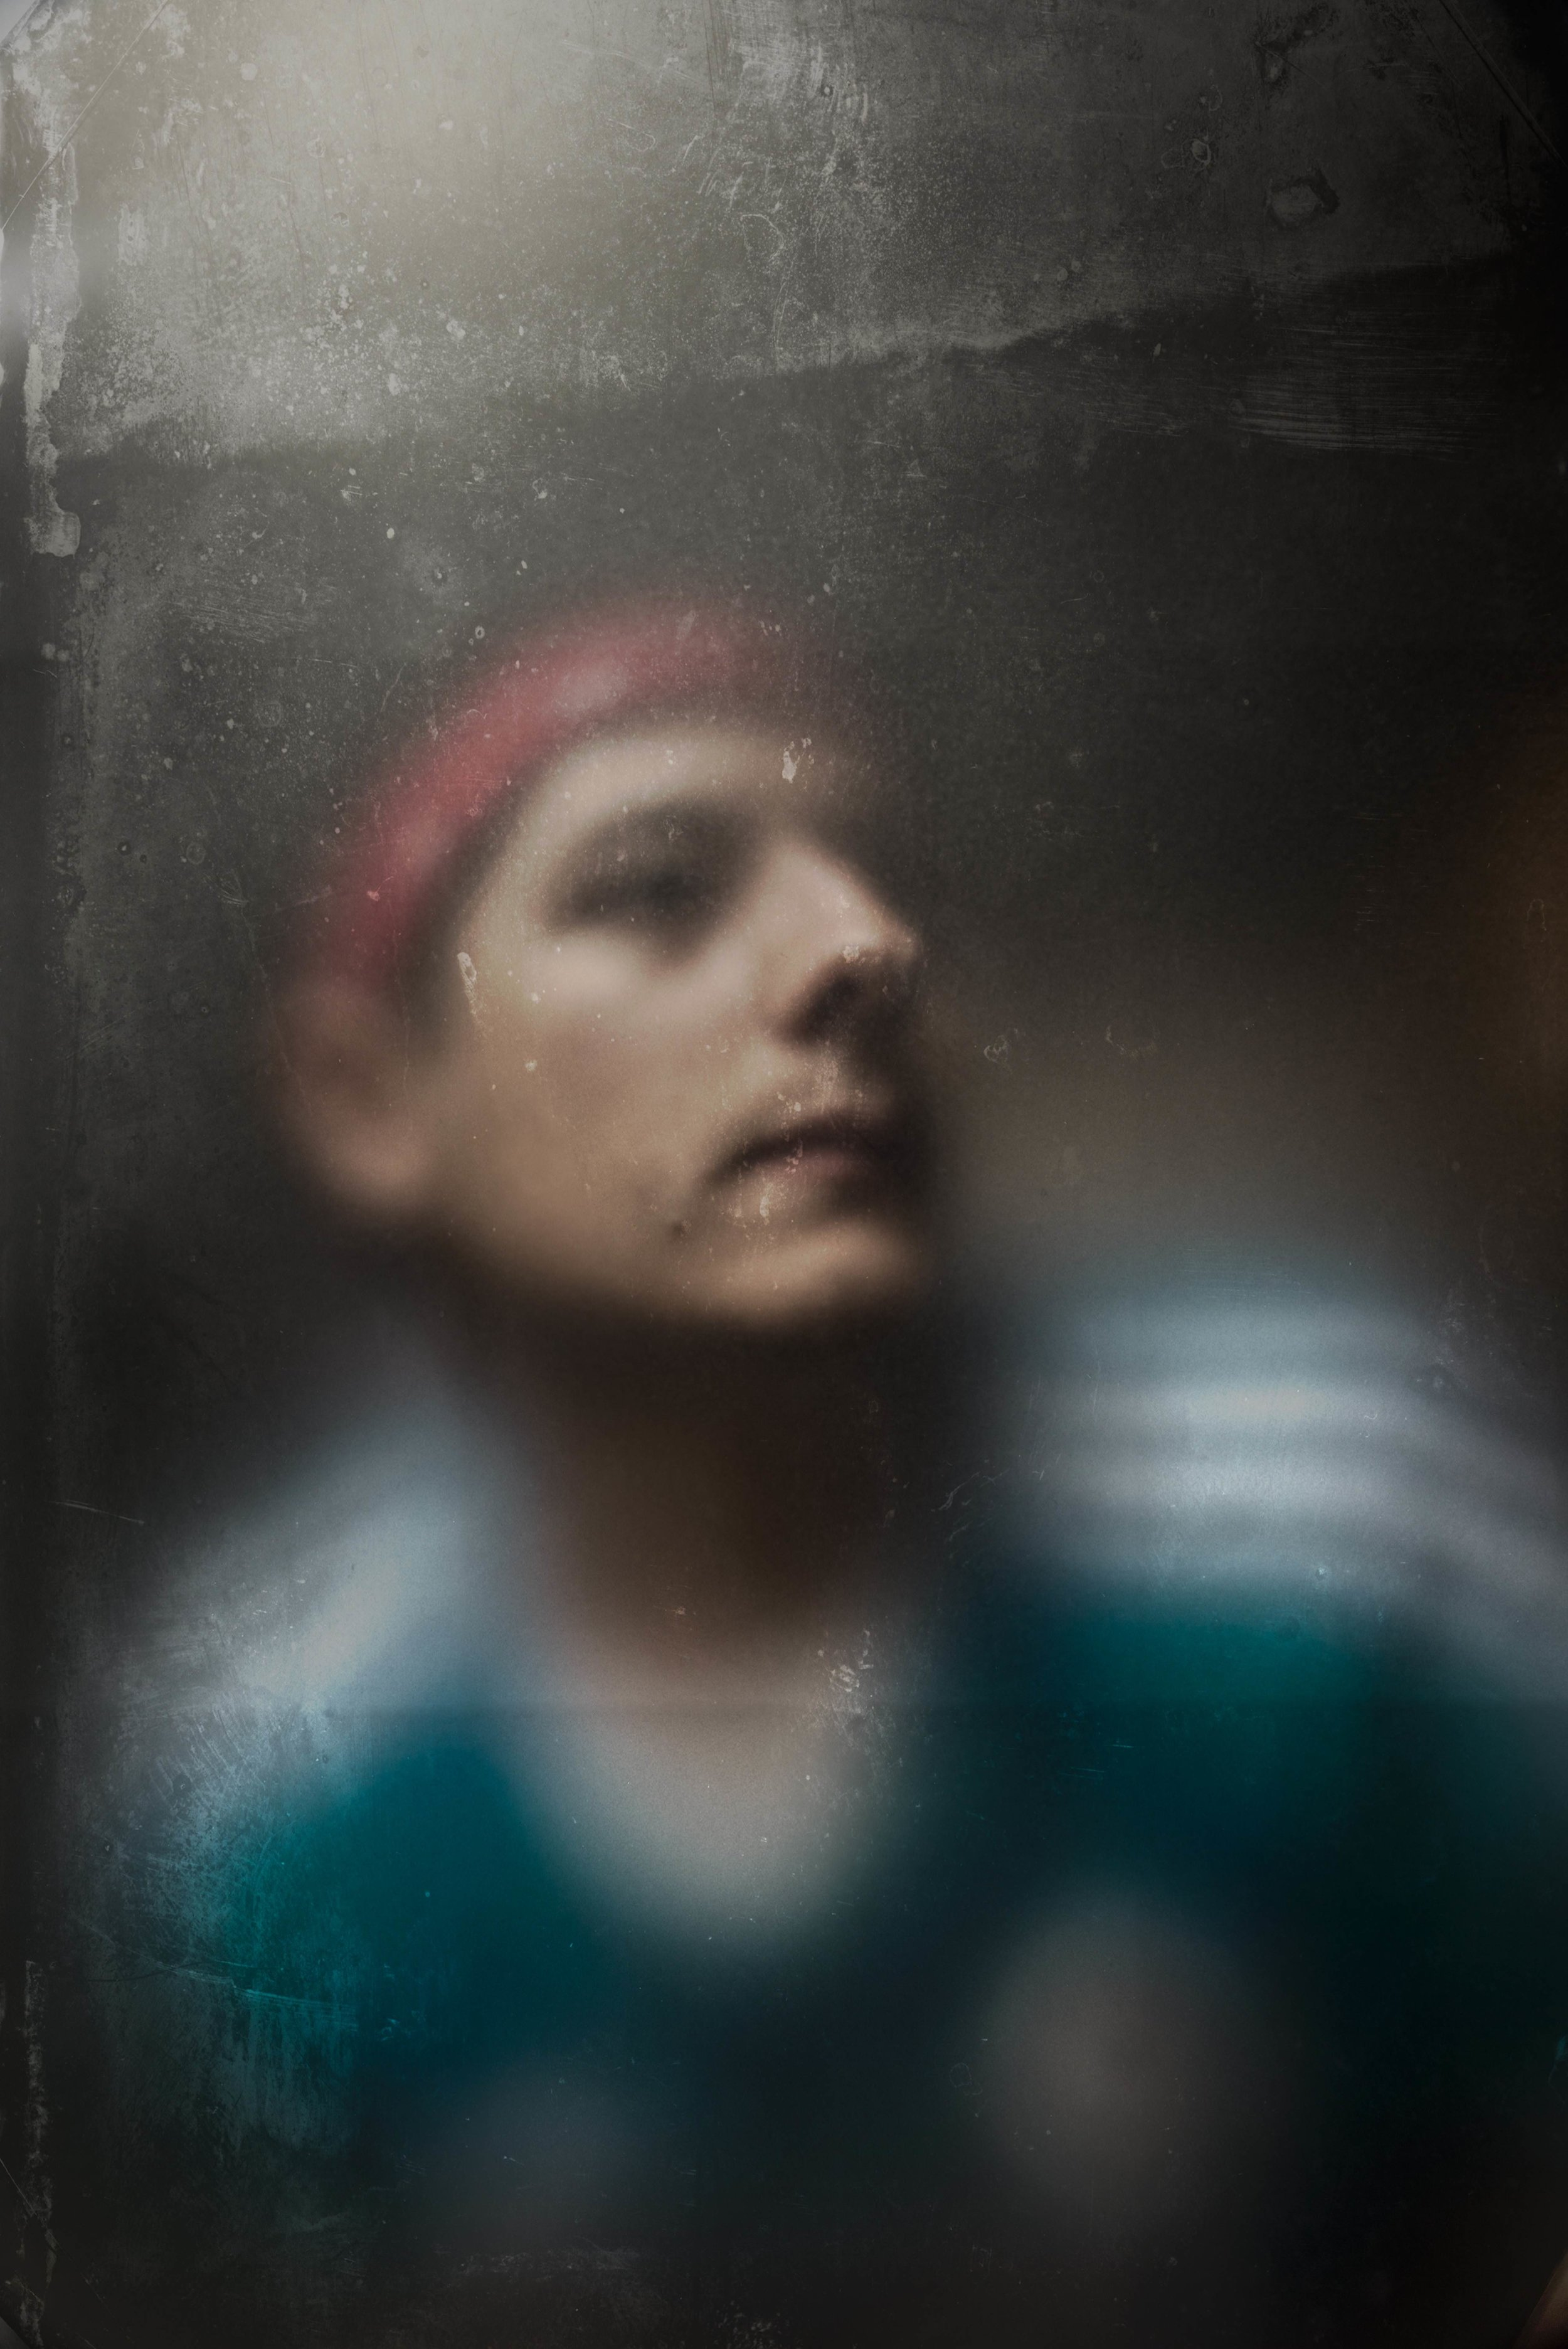 austin-trigg-halloween-spooky-portraits-soccer-player-lighting-project-personal-scary-makeup-costume-old-fashion-style-fog-glass.jpg